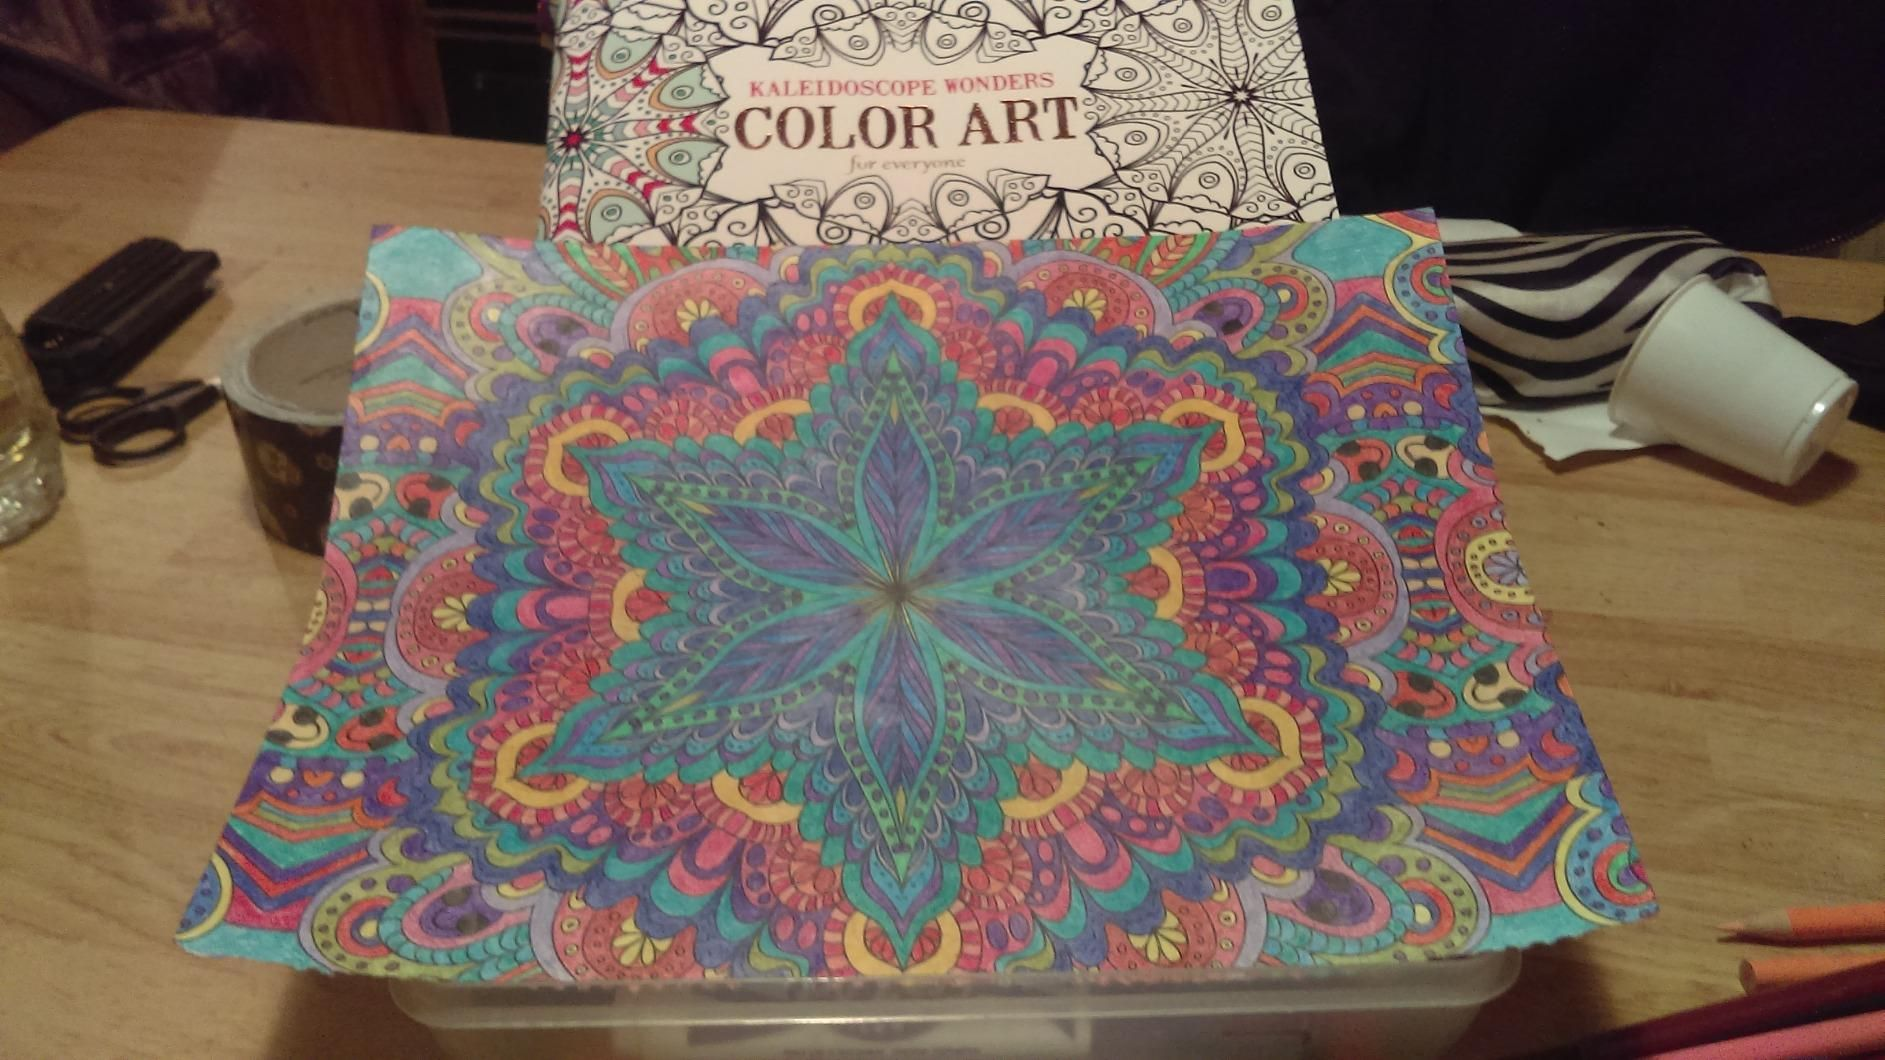 Color art kaleidoscope - Kaleidoscope Wonders Color Art For Everyone Leisure Arts The Guild Of Master Craftsman